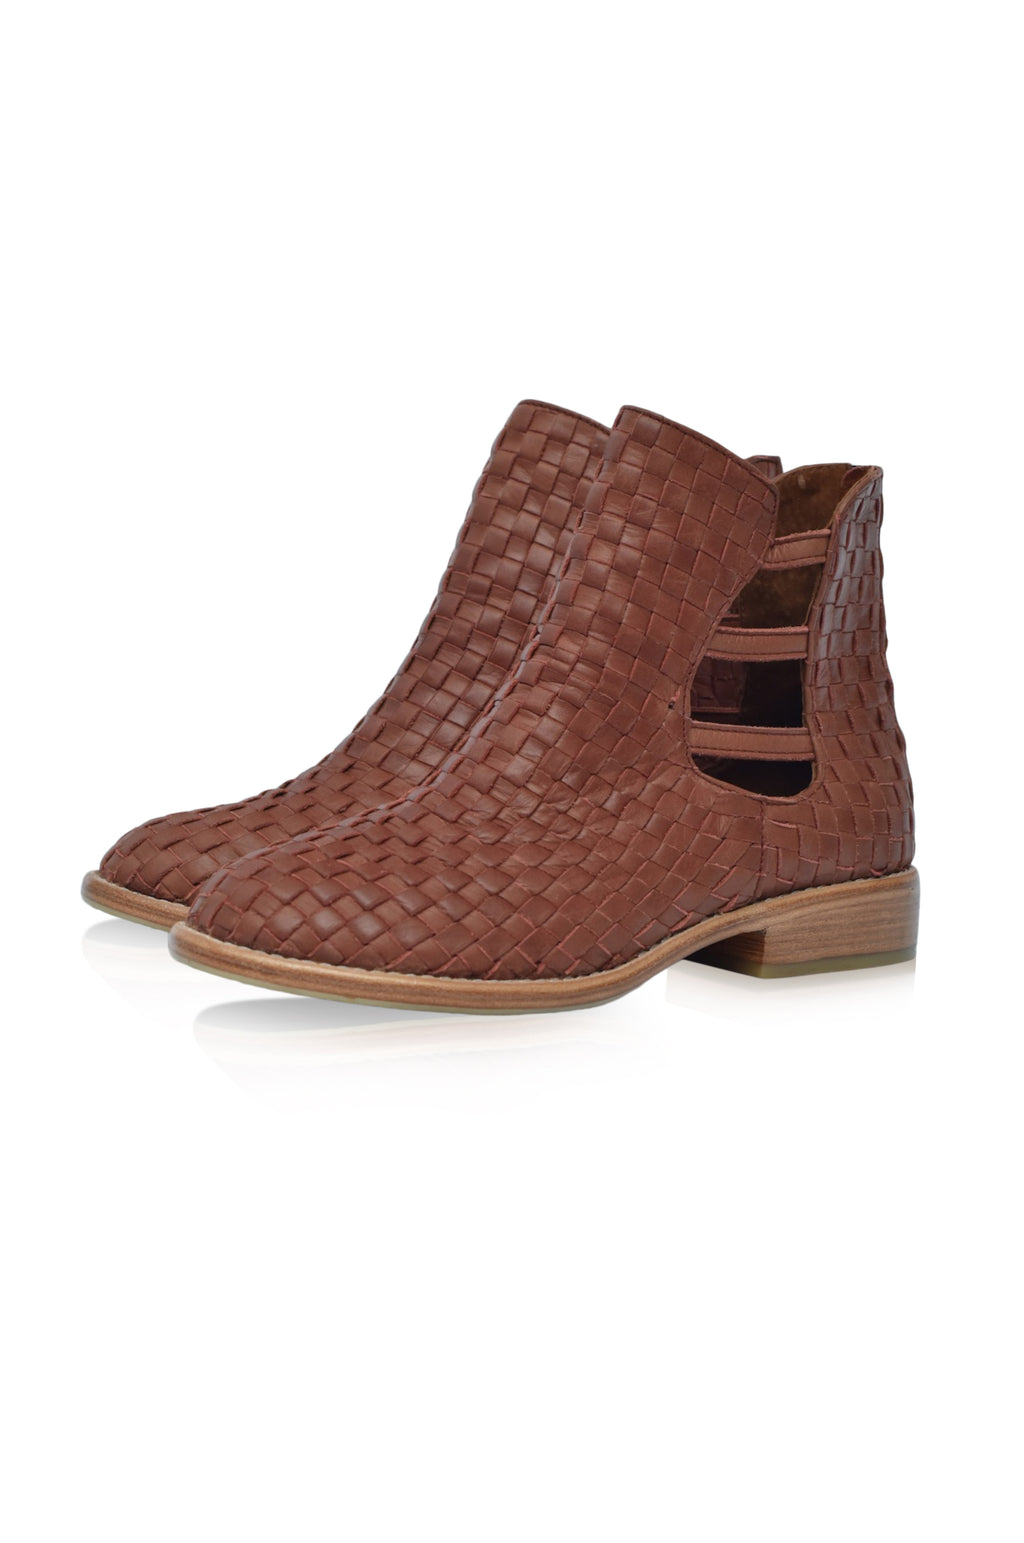 Avenue Woven Leather Boots (* Sz. 8)